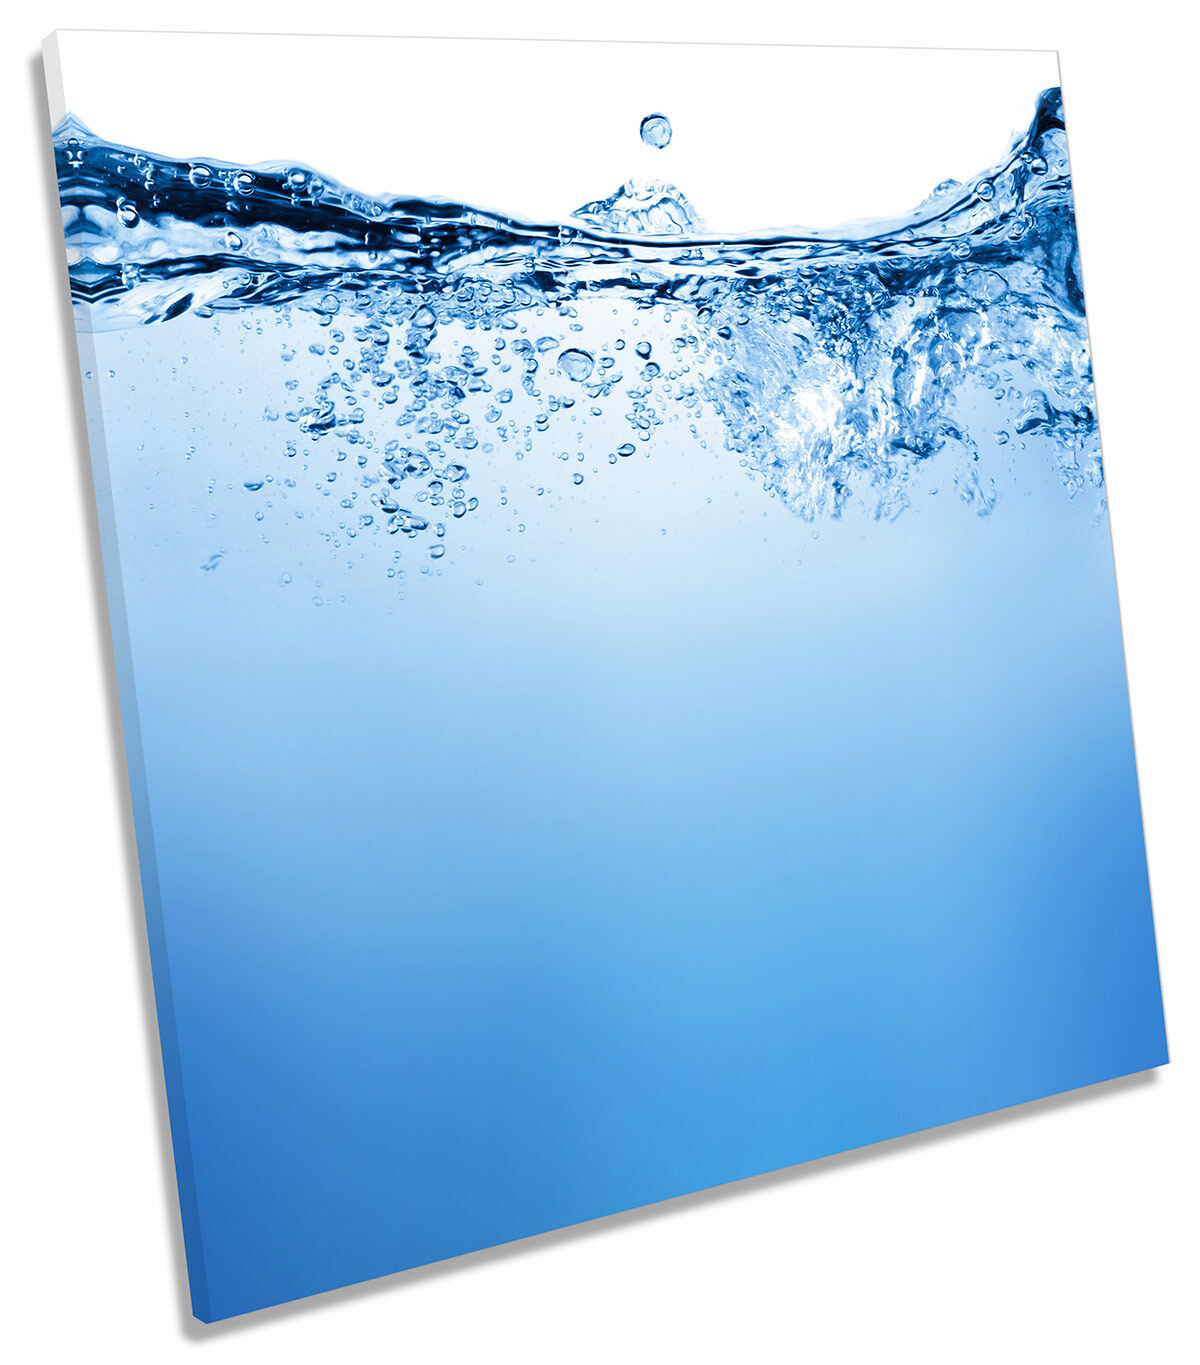 Blau Water Bathroom Picture CANVAS WALL ART Square Print